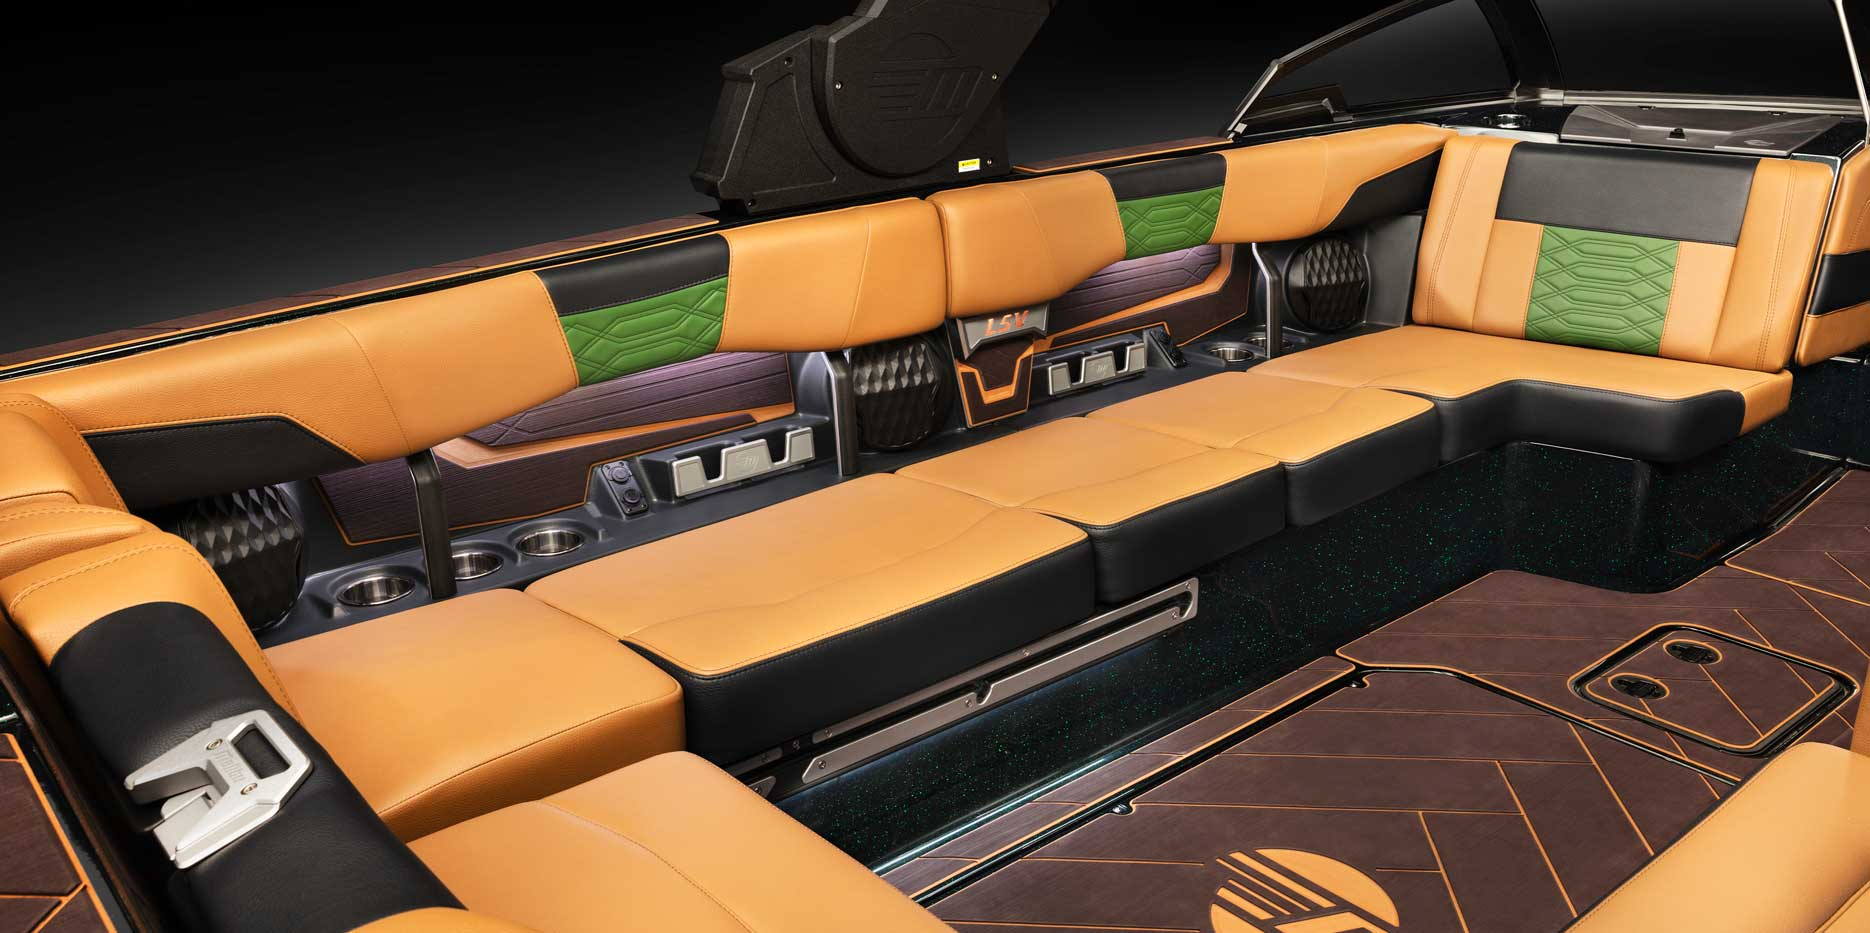 The 25 LSV luxury lounge